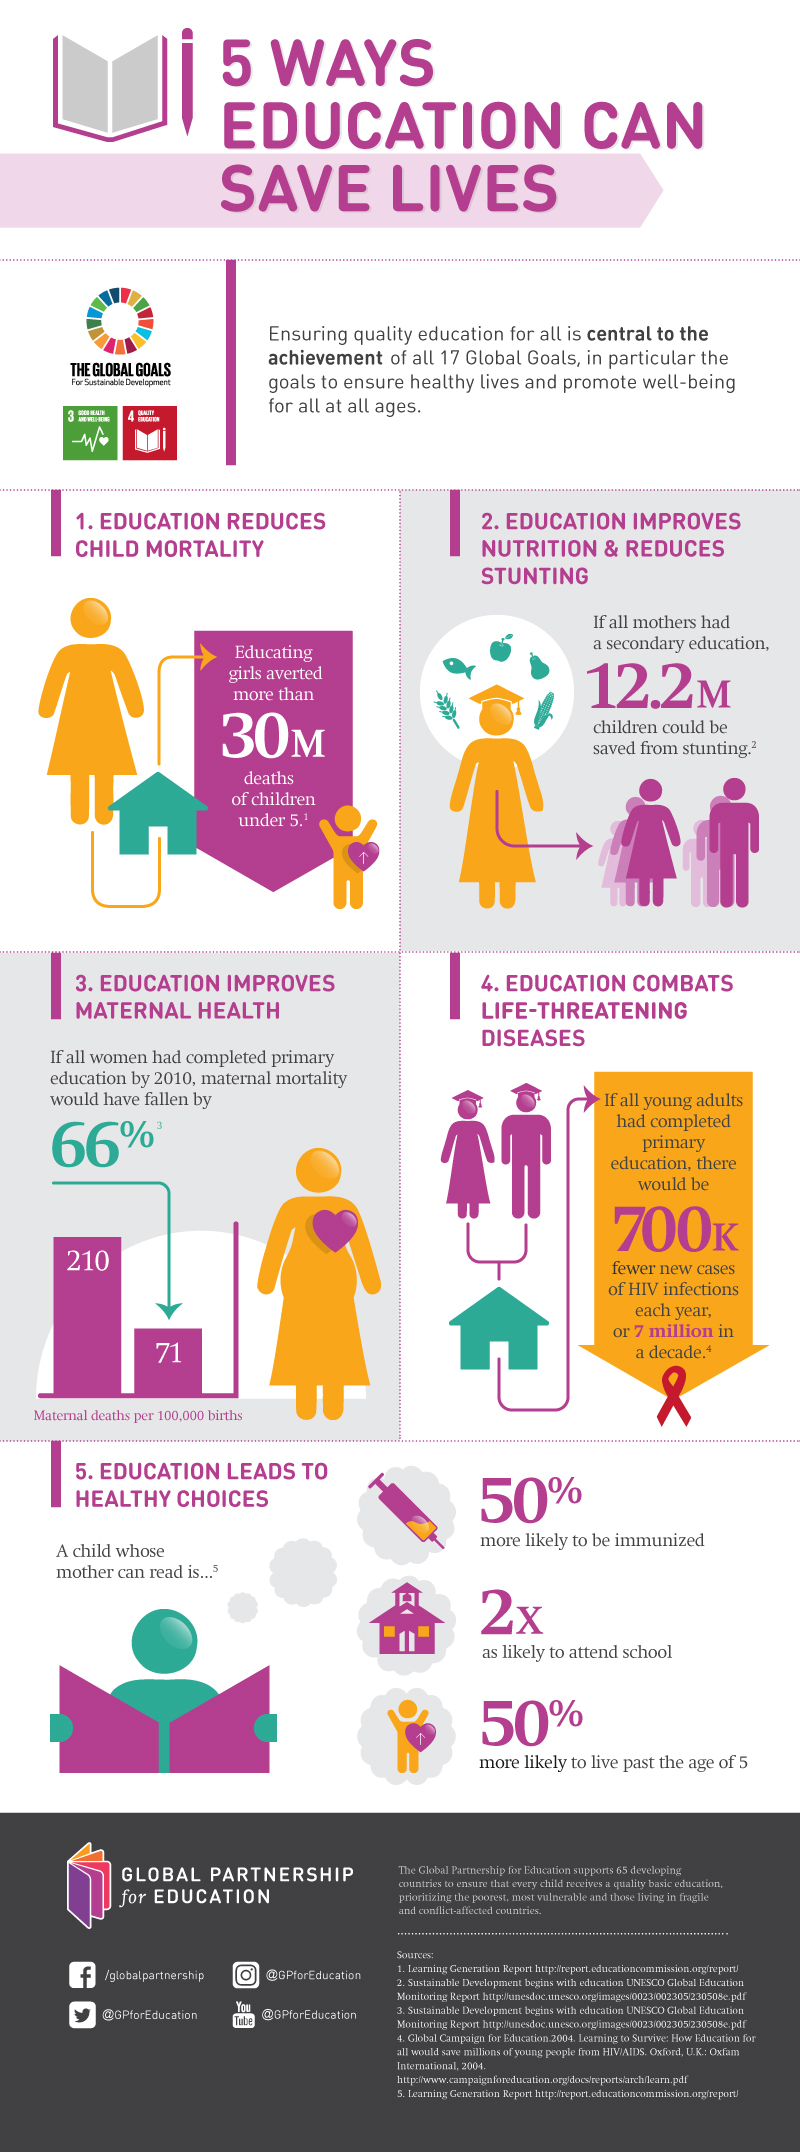 Infographic: 5 ways education saves lives